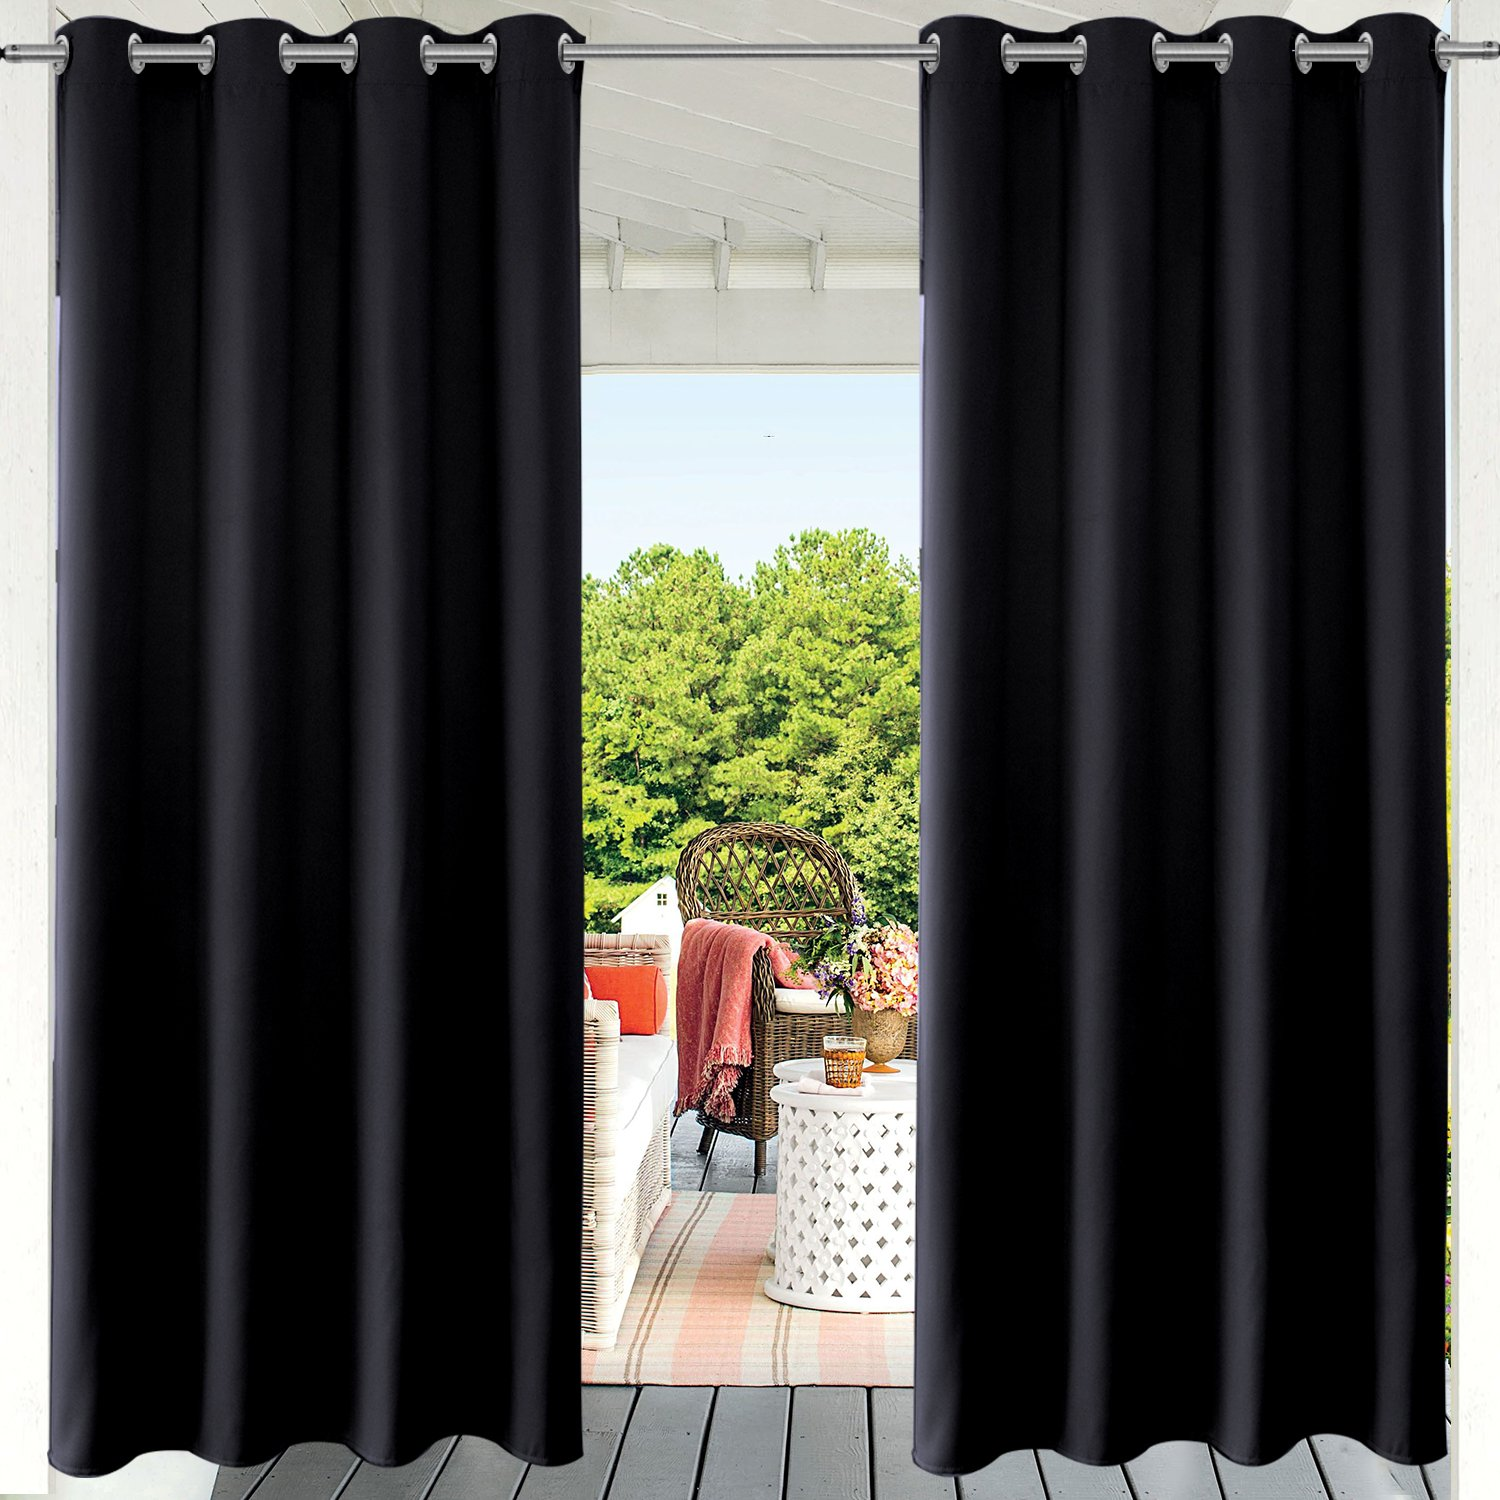 PRAVIVE Blackout Outdoor Curtain Drapes - Indoor/Outdoor Grommet Patio Blinds Waterproof Solid Cabana/Canvas Window Curtain Panels, Black, 52'' Width by 95'' Length, 1 Piece